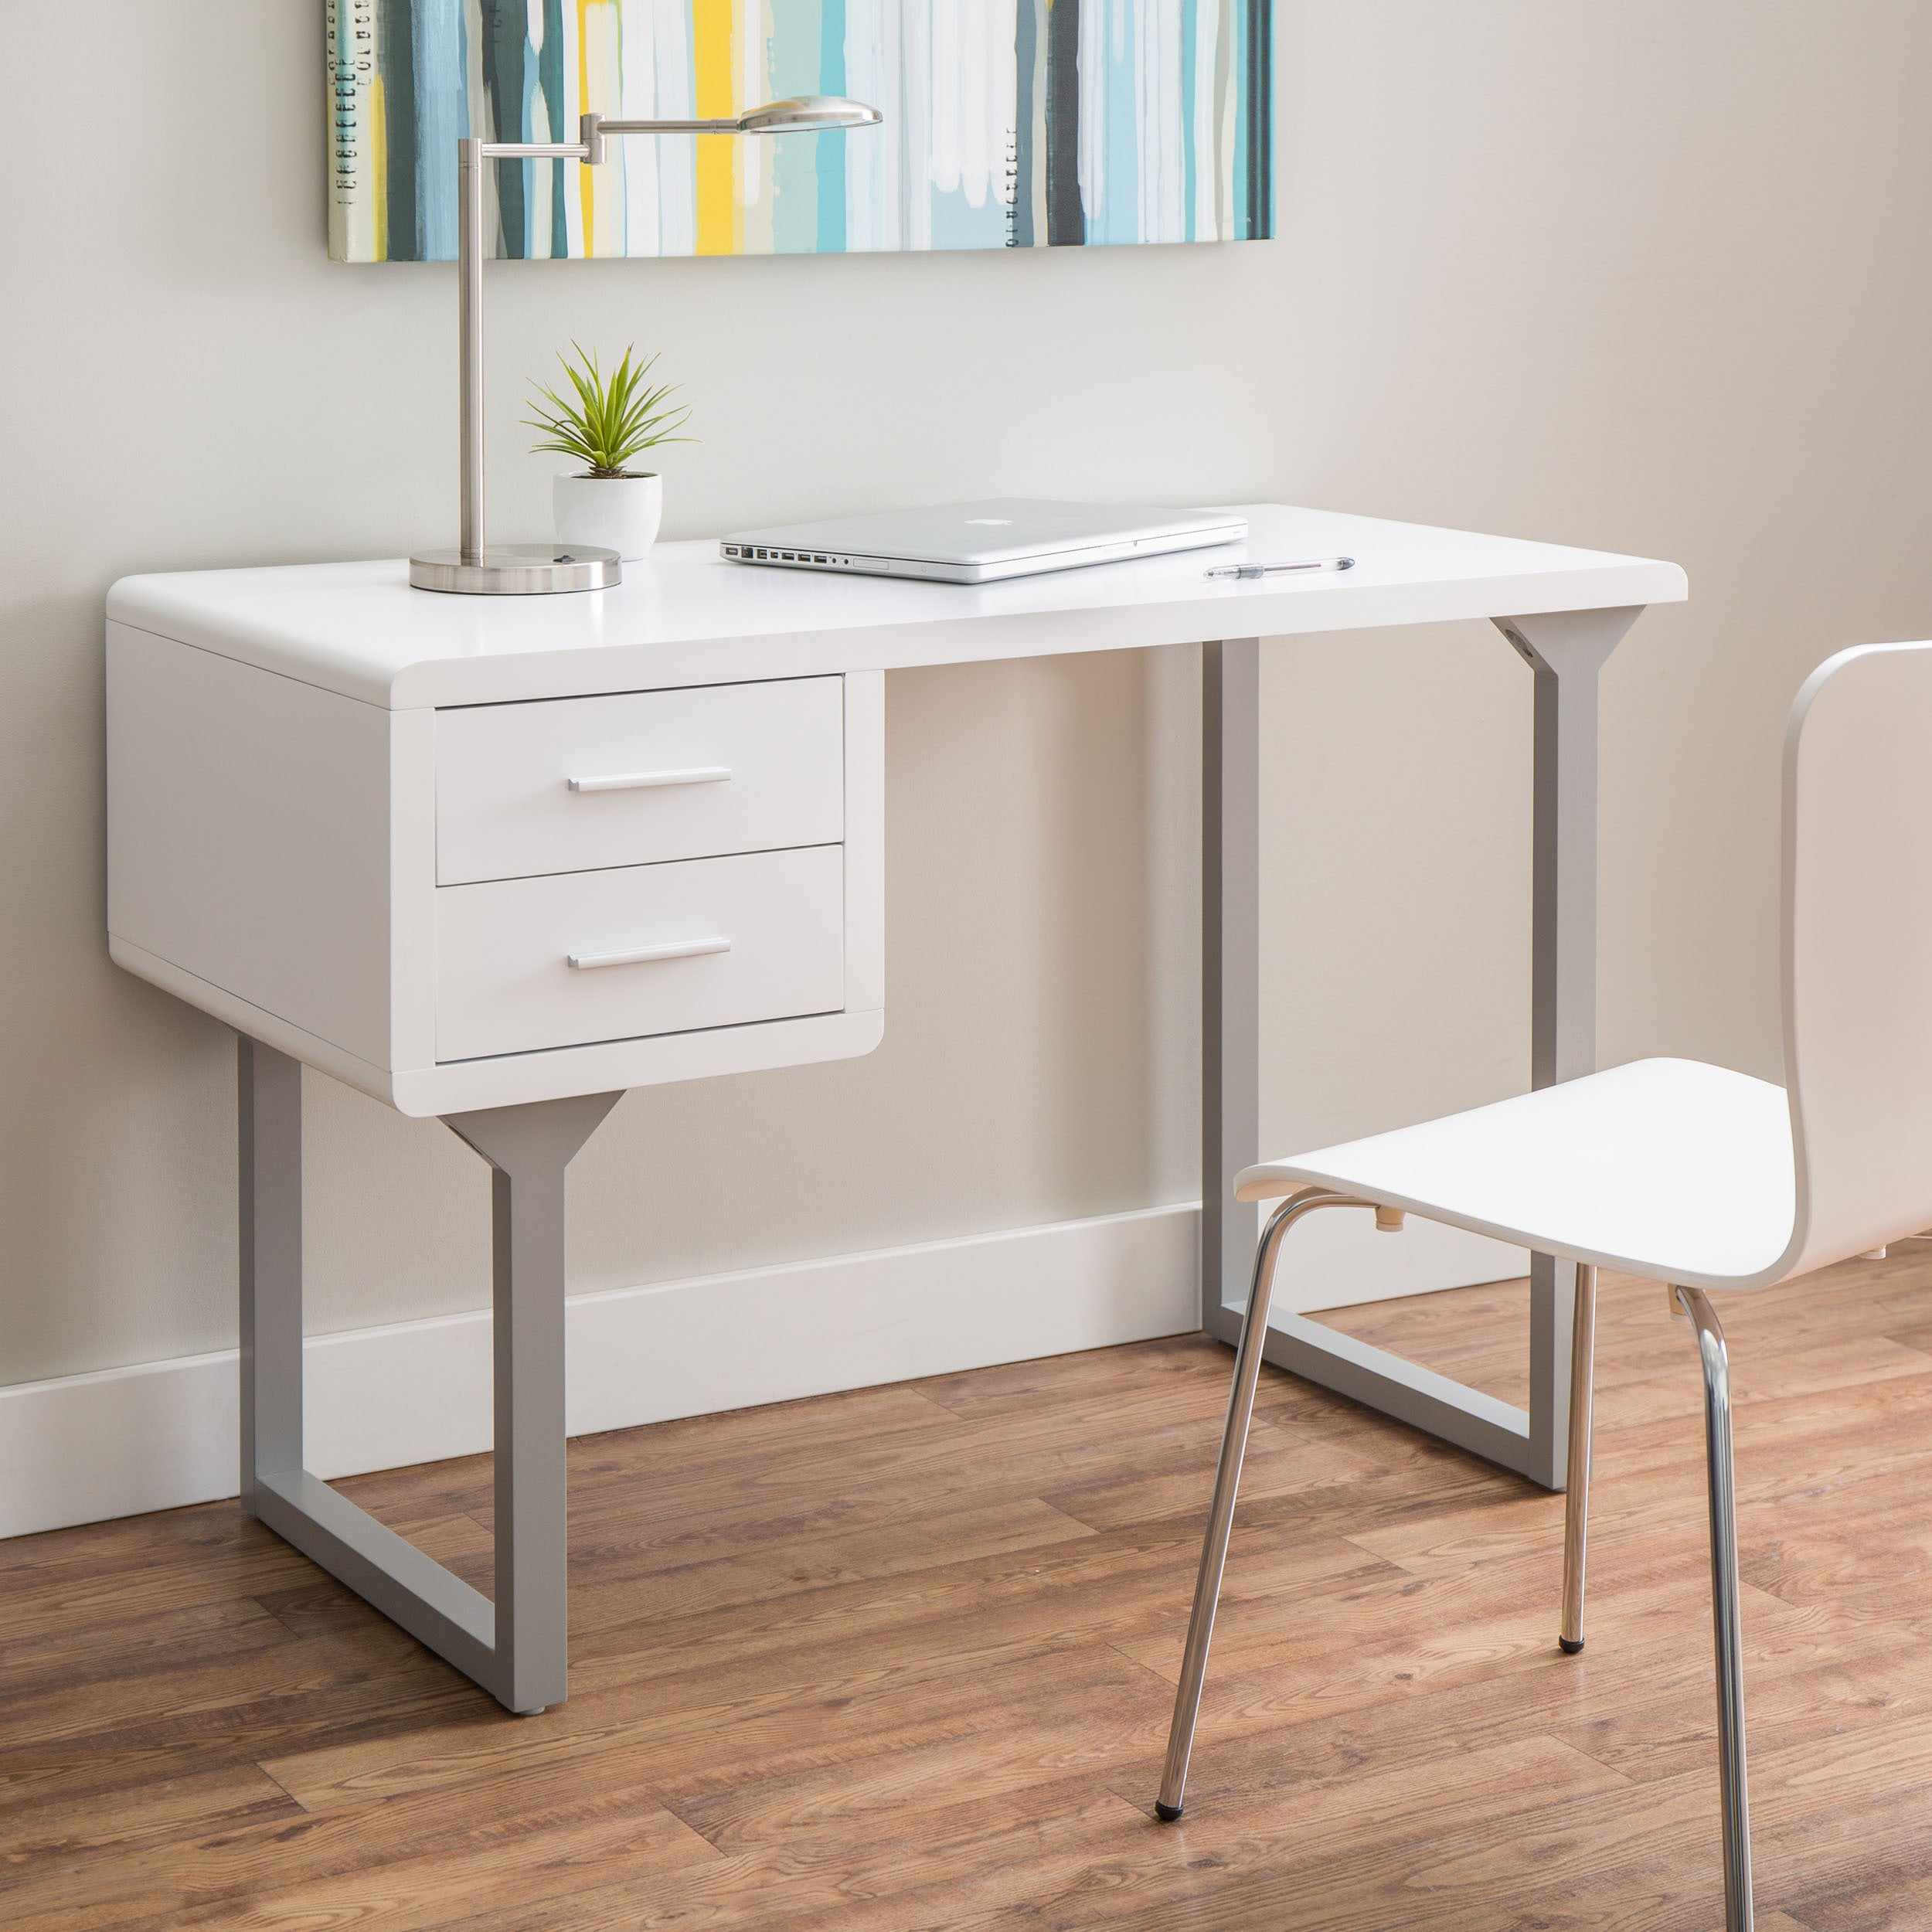 The Condo Project 12 Minimalist White Desks To Buy Or Diy